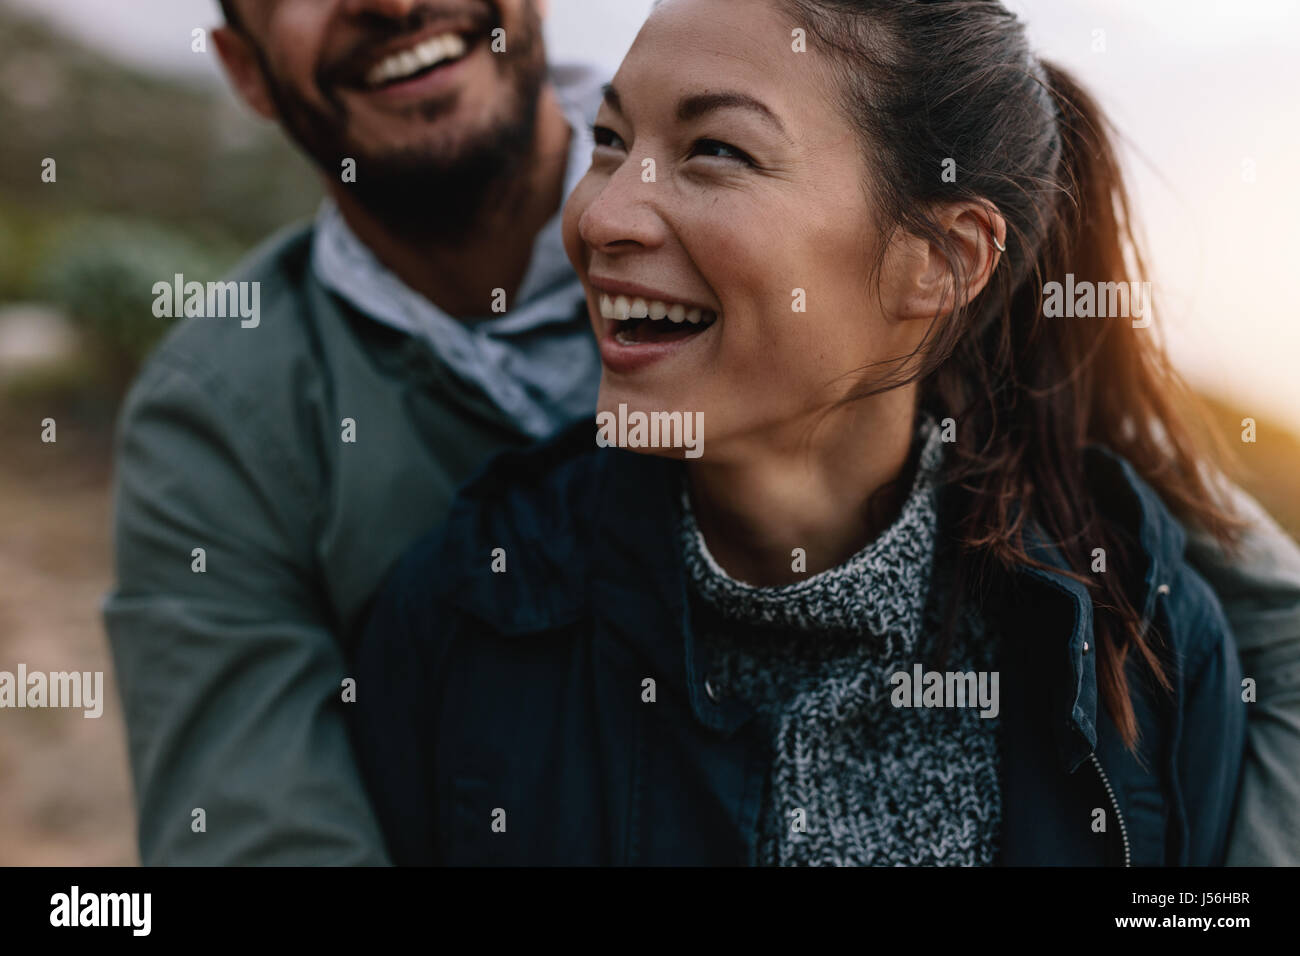 Smiling asian woman being embraced by her boyfriend from behind. Couple enjoying on vacation. - Stock Image